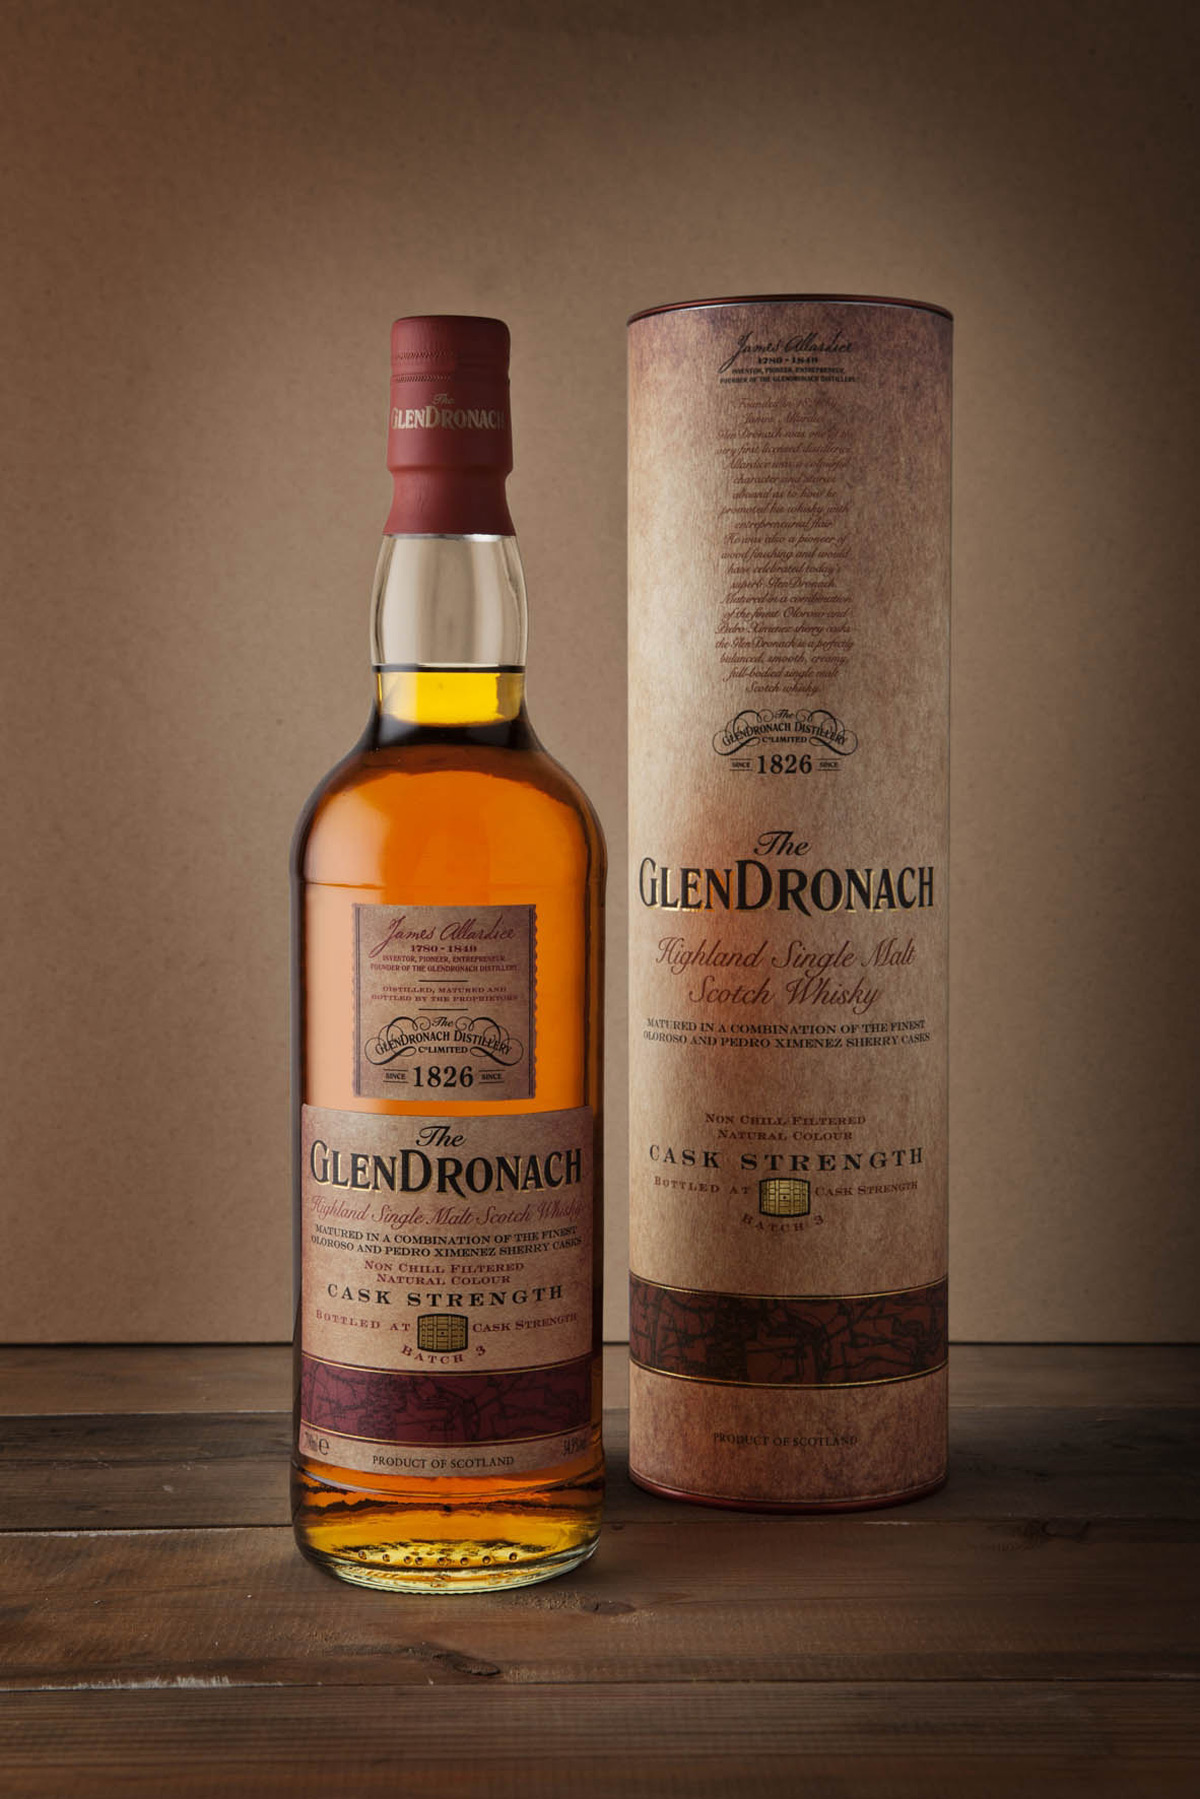 Glendronach Cask Strength Now Reaching 3rd Batch